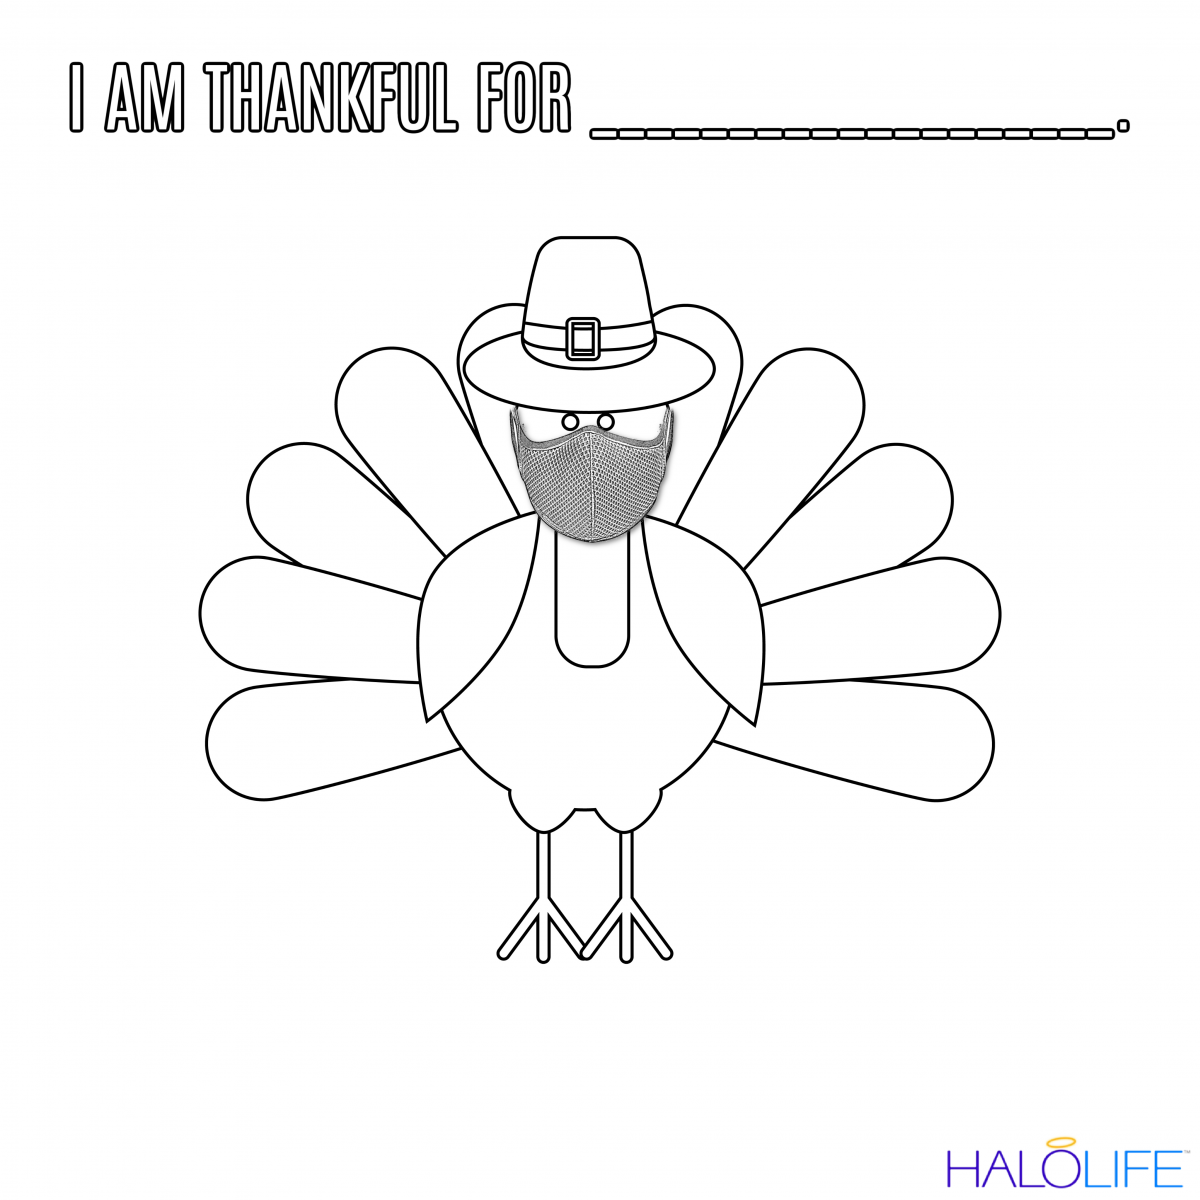 HALOLIFE Thanksgiving Coloring Page [PRINTABLE]